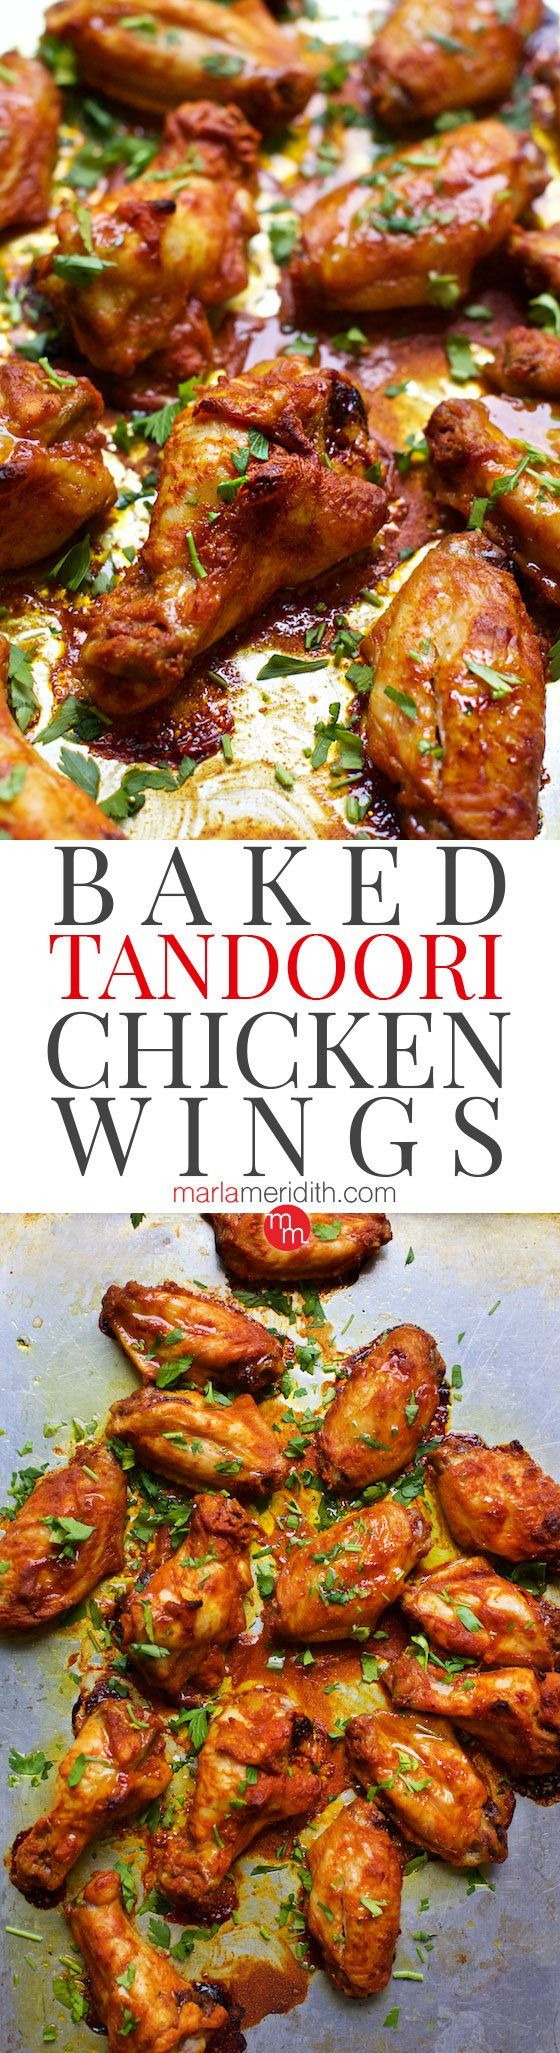 Baked Tandoori Chicken Wings are a super flavorful appetizer! Get the #recipe at MarlaMeridith.com ( @marlameridith )